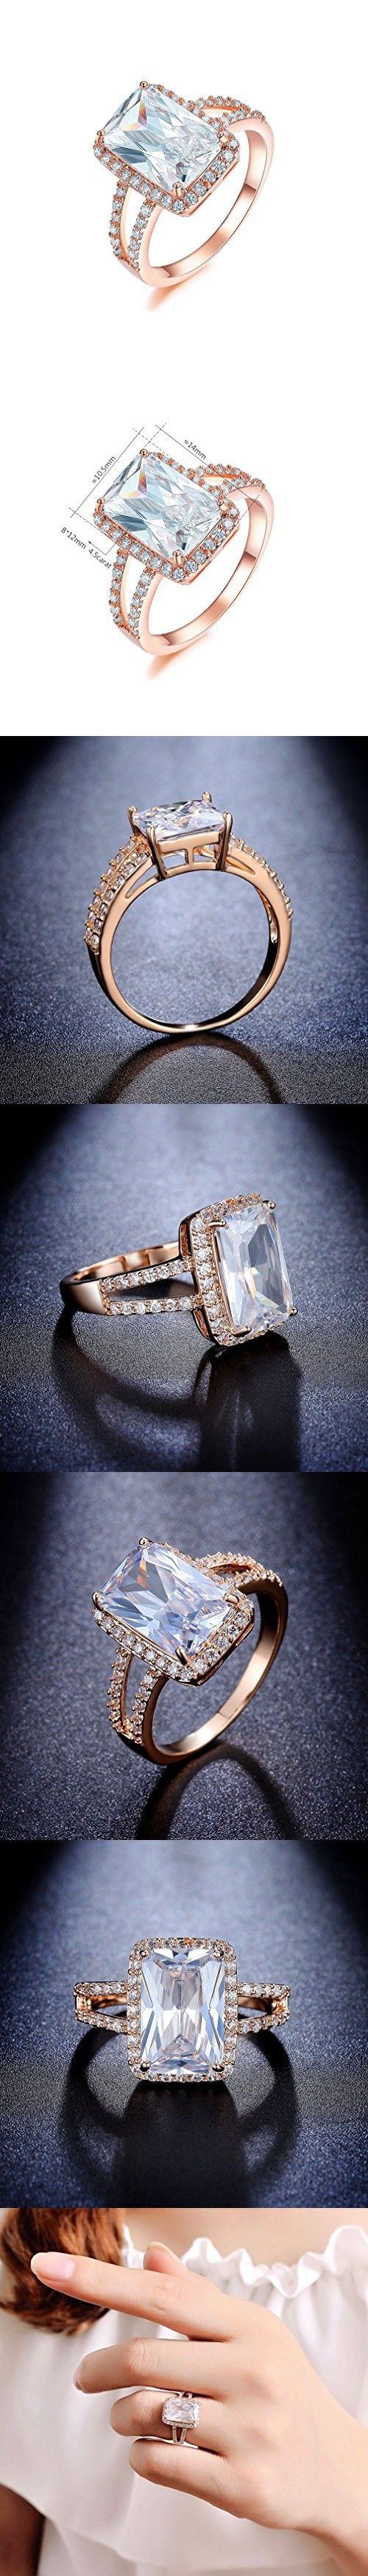 Bella Lotus 4.5ct Radiant Cut CZ 18k Gold Plated Vintage Engagement Rings, Size 7